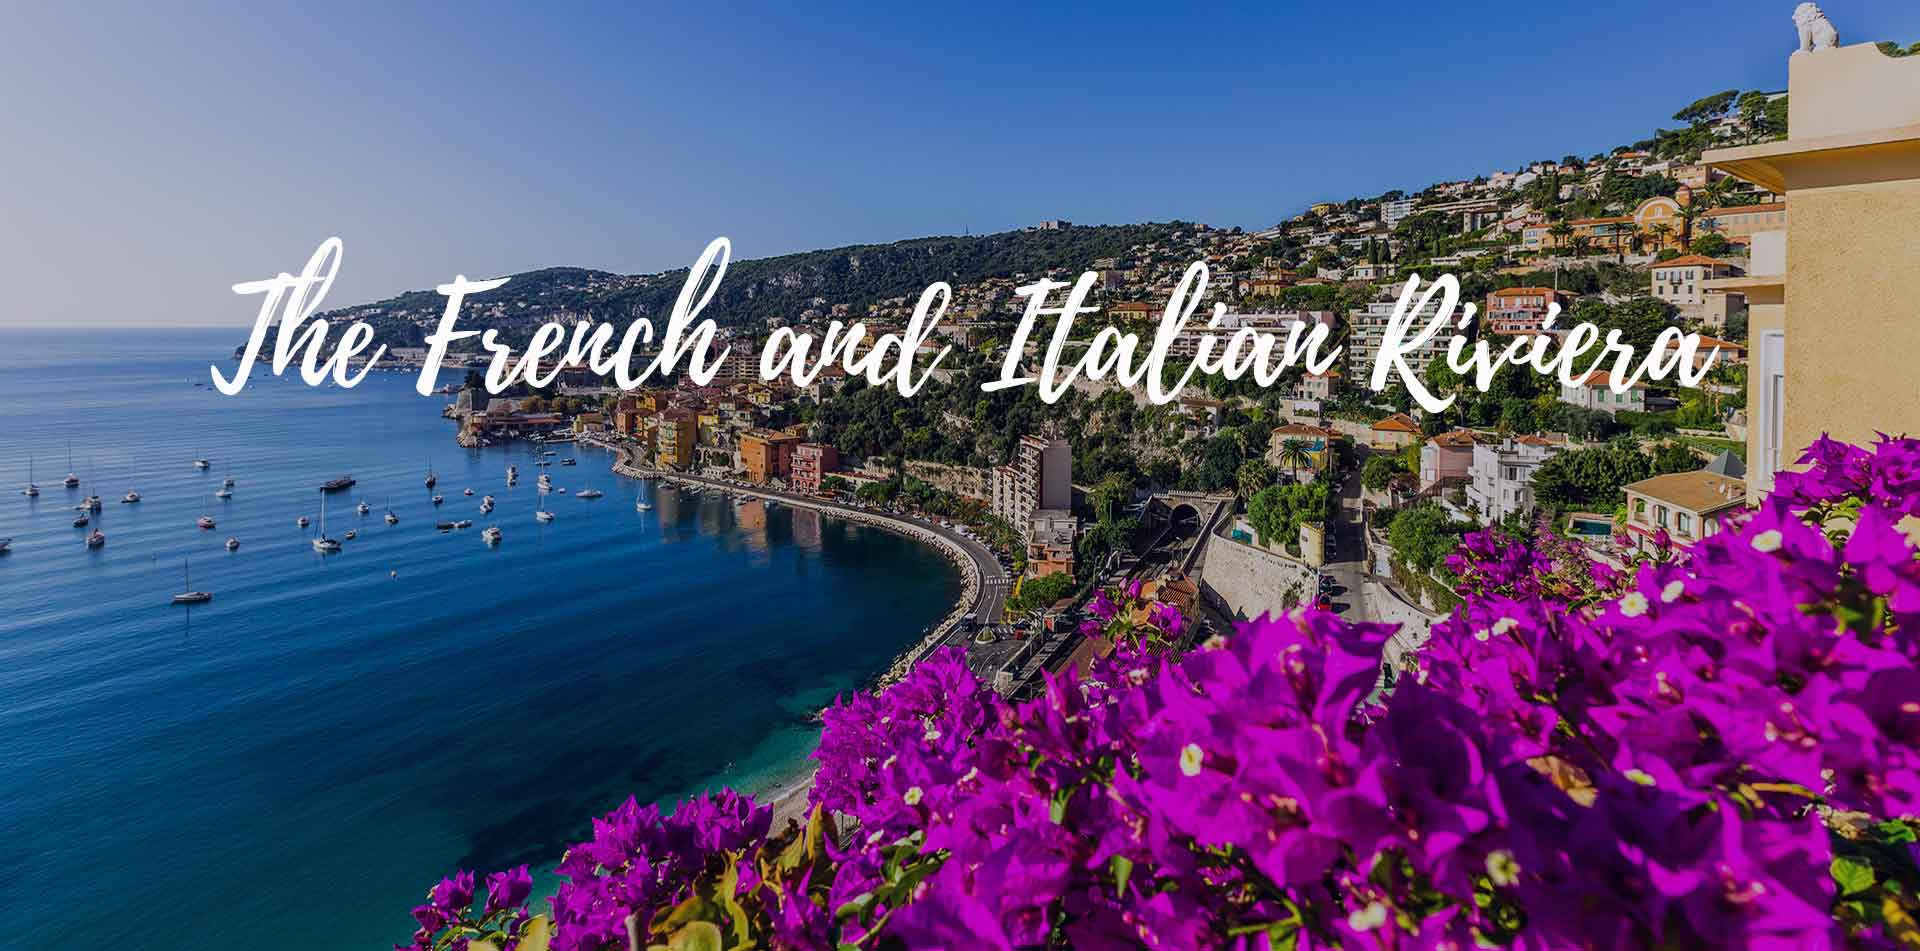 Europe The French and Italian Riviera ocean coastline from hillside viewpoint - luxury vacation destinations